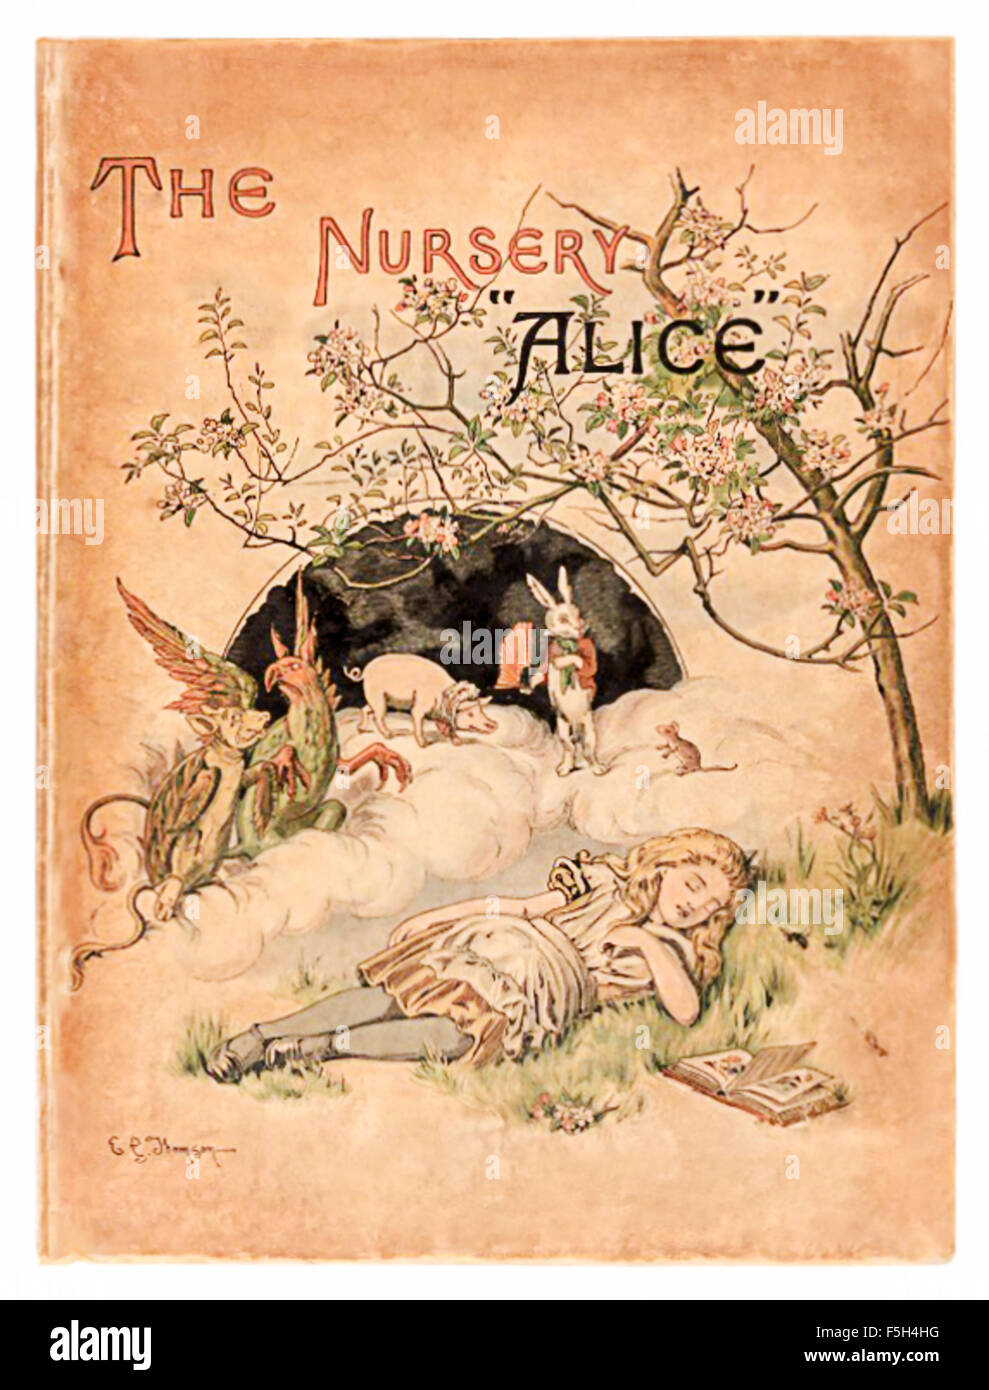 "'The Nursery ""Alice'', an shortened adaptation of 'Alice's Adventures in Wonderland' aimed at under - Stock Image"